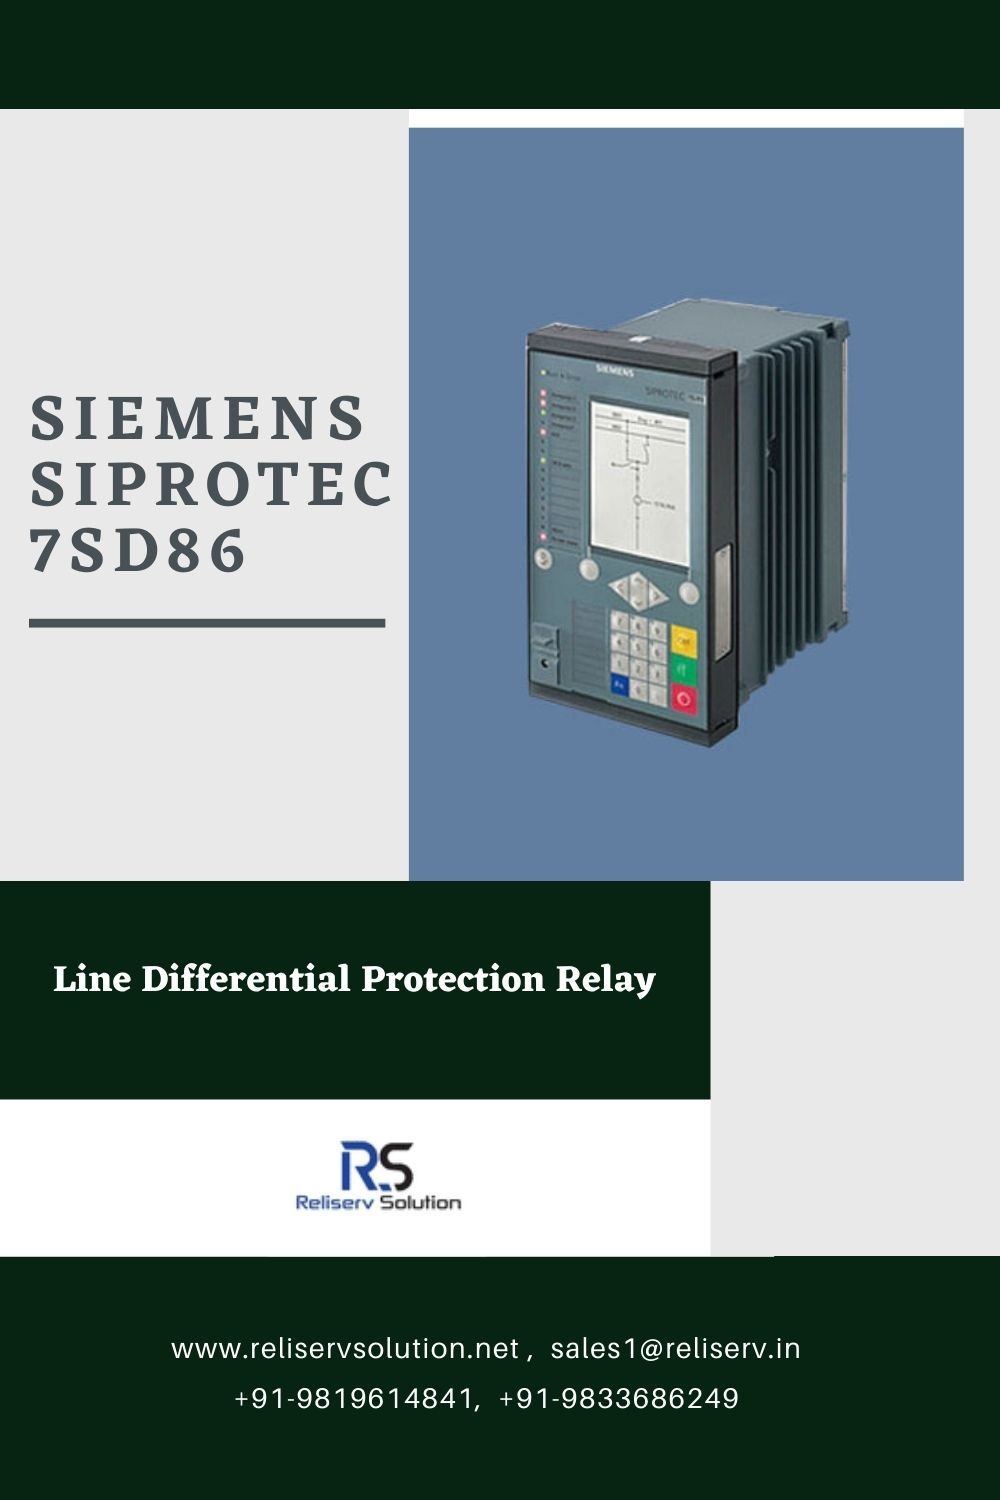 Siemens Siprotec 5 7sd86 Line Differential Protection Relay Siemens Engineering Tools Protection